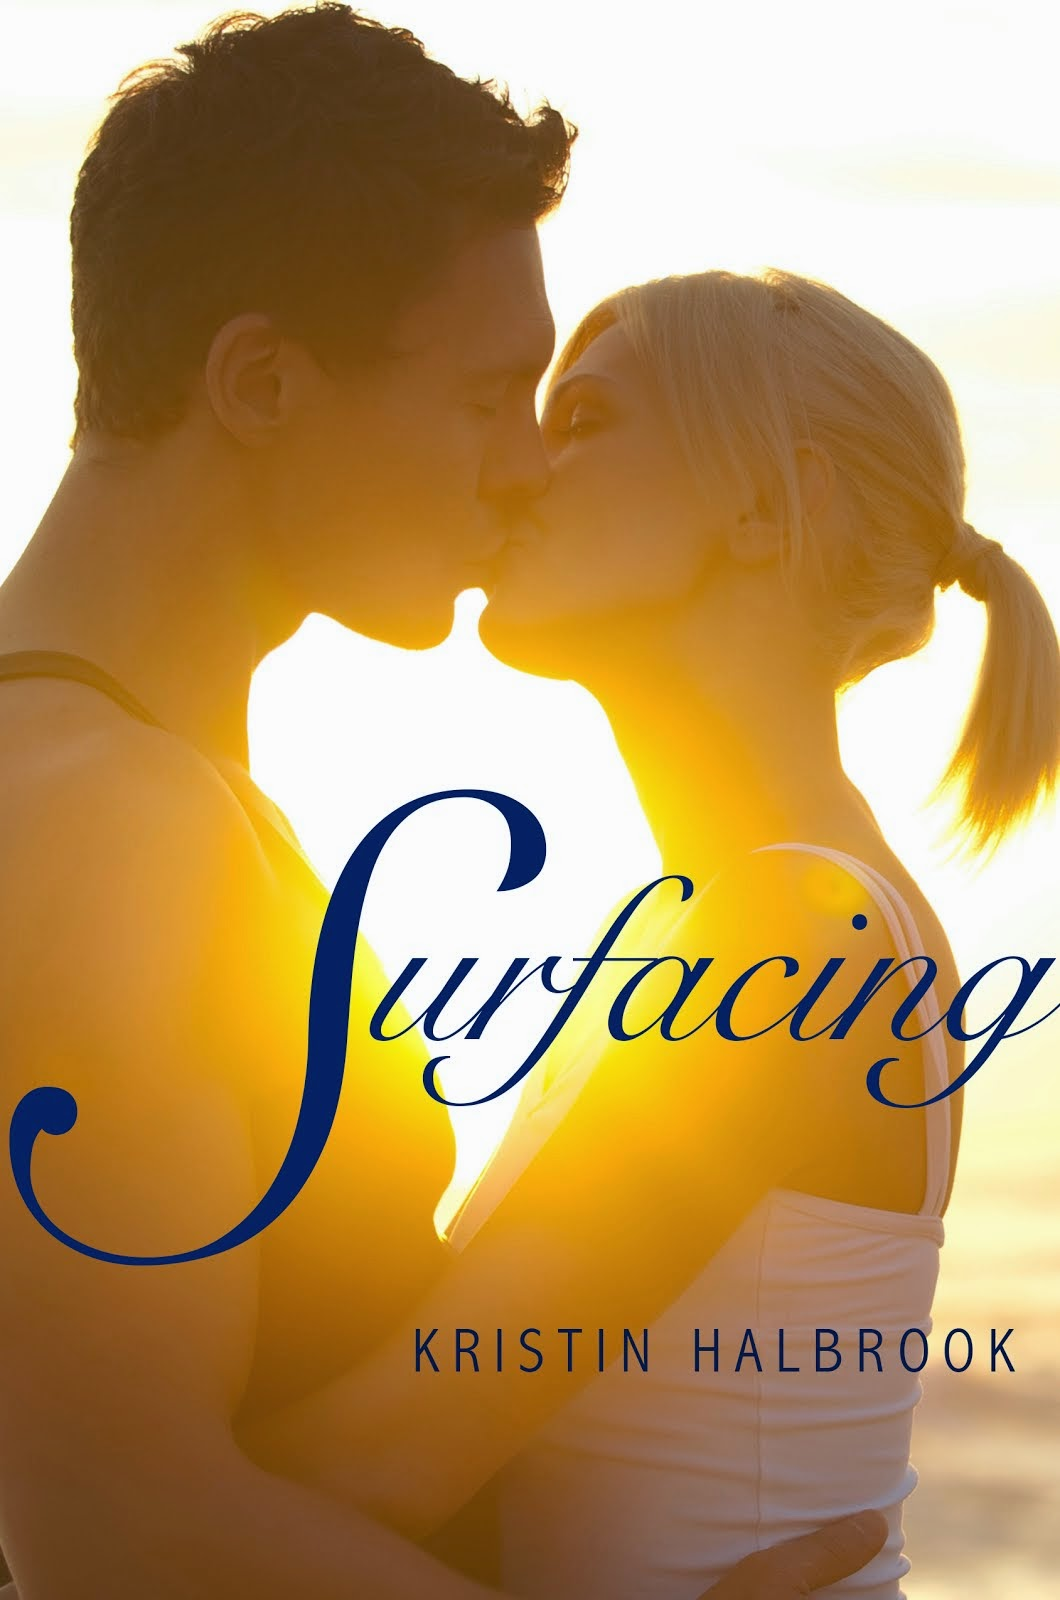 SURFACING, my New Adult debut, is now available from Amazon, Kobo, iBooks, B&N and more!